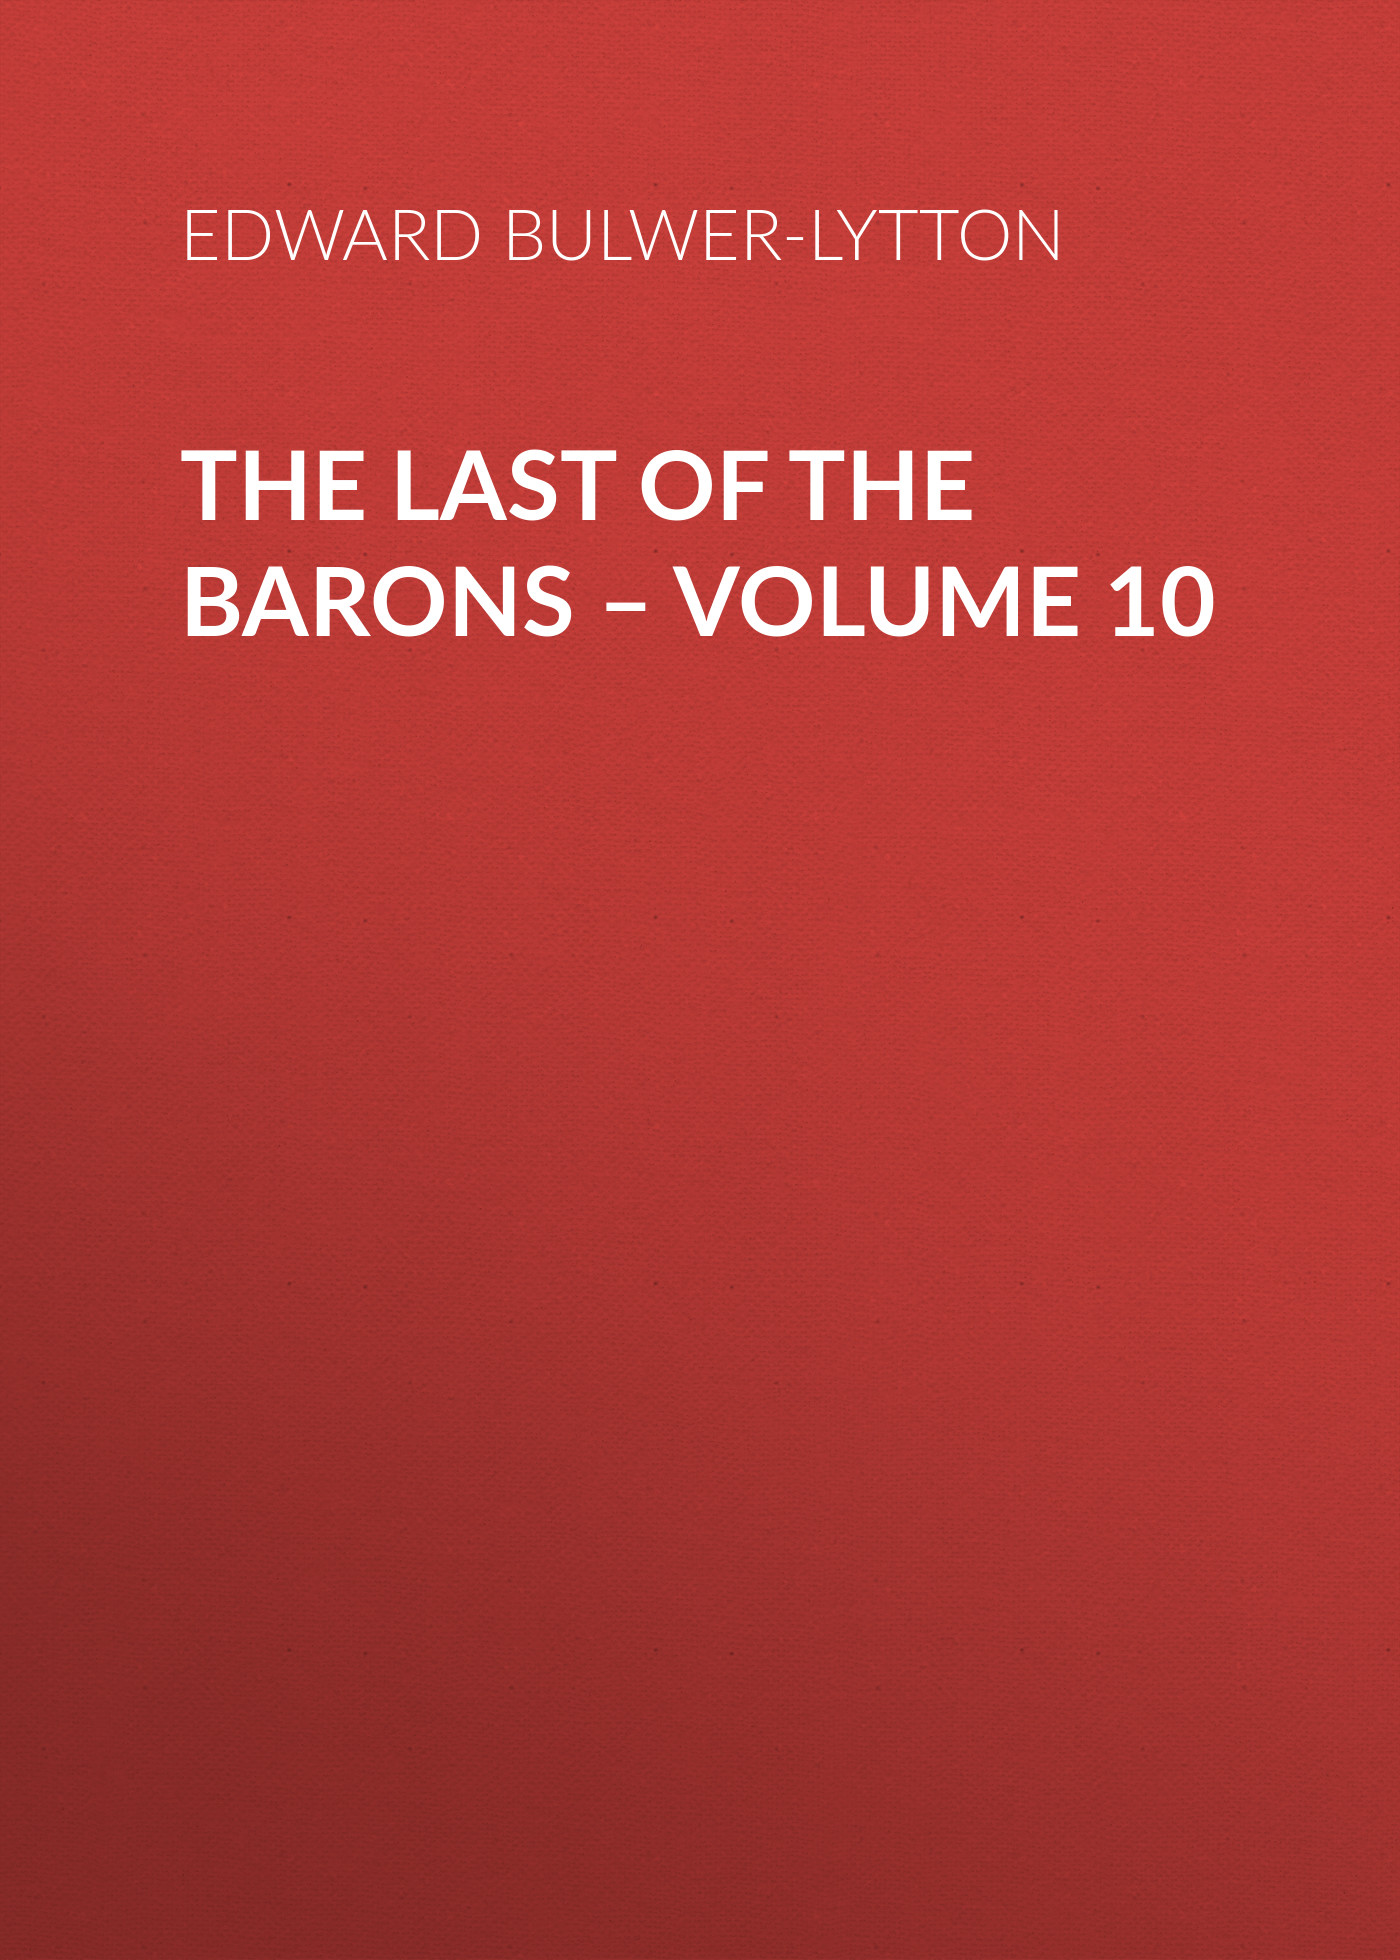 Эдвард Бульвер-Литтон The Last of the Barons – Volume 10 fayrene preston the barons of texas tess